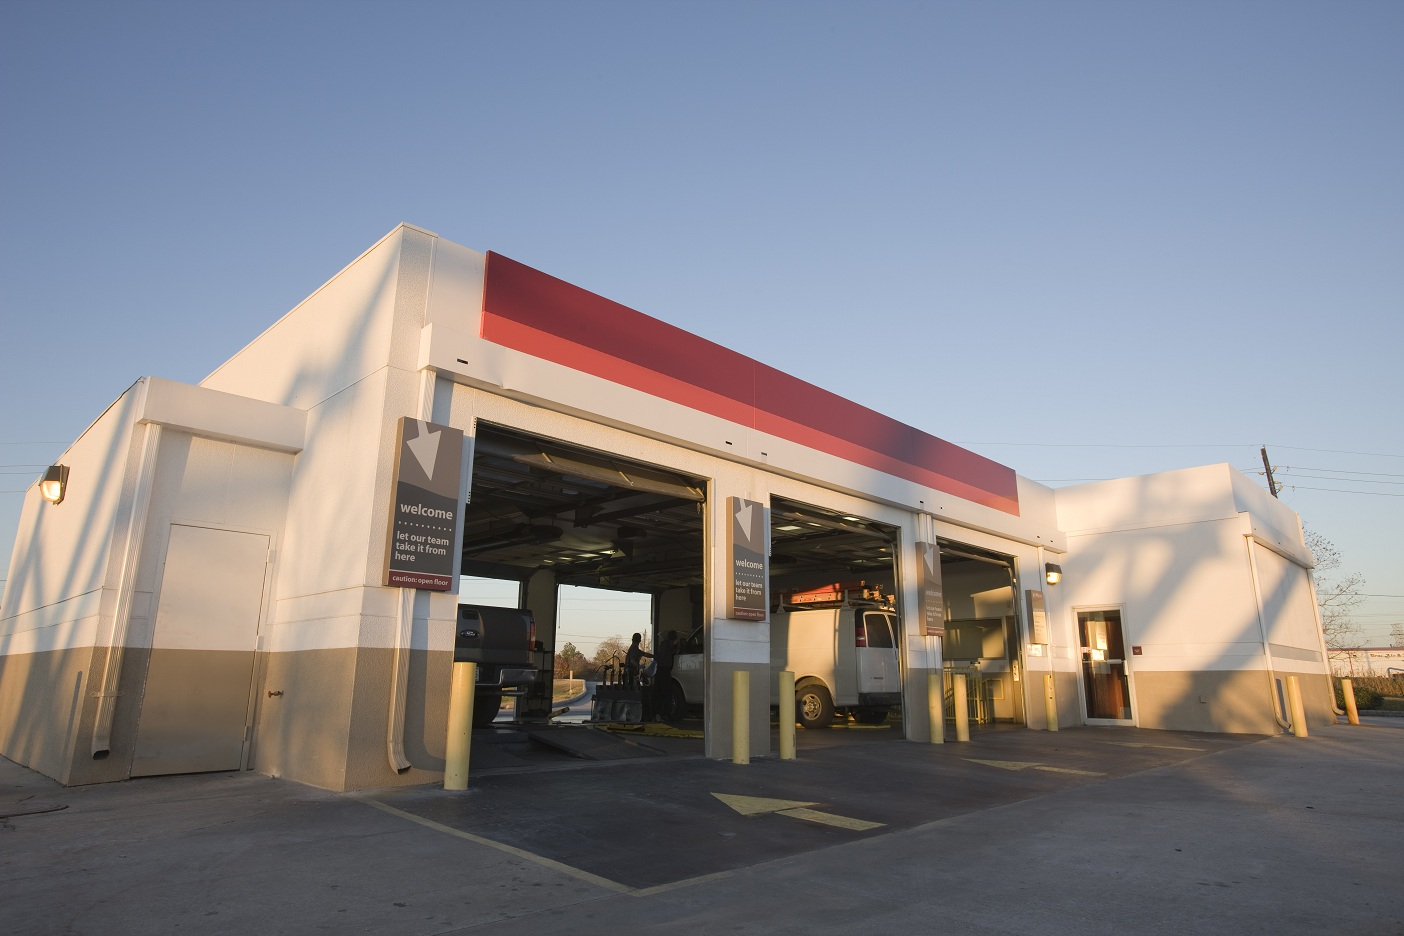 Jiffy Lube in Newark, CA